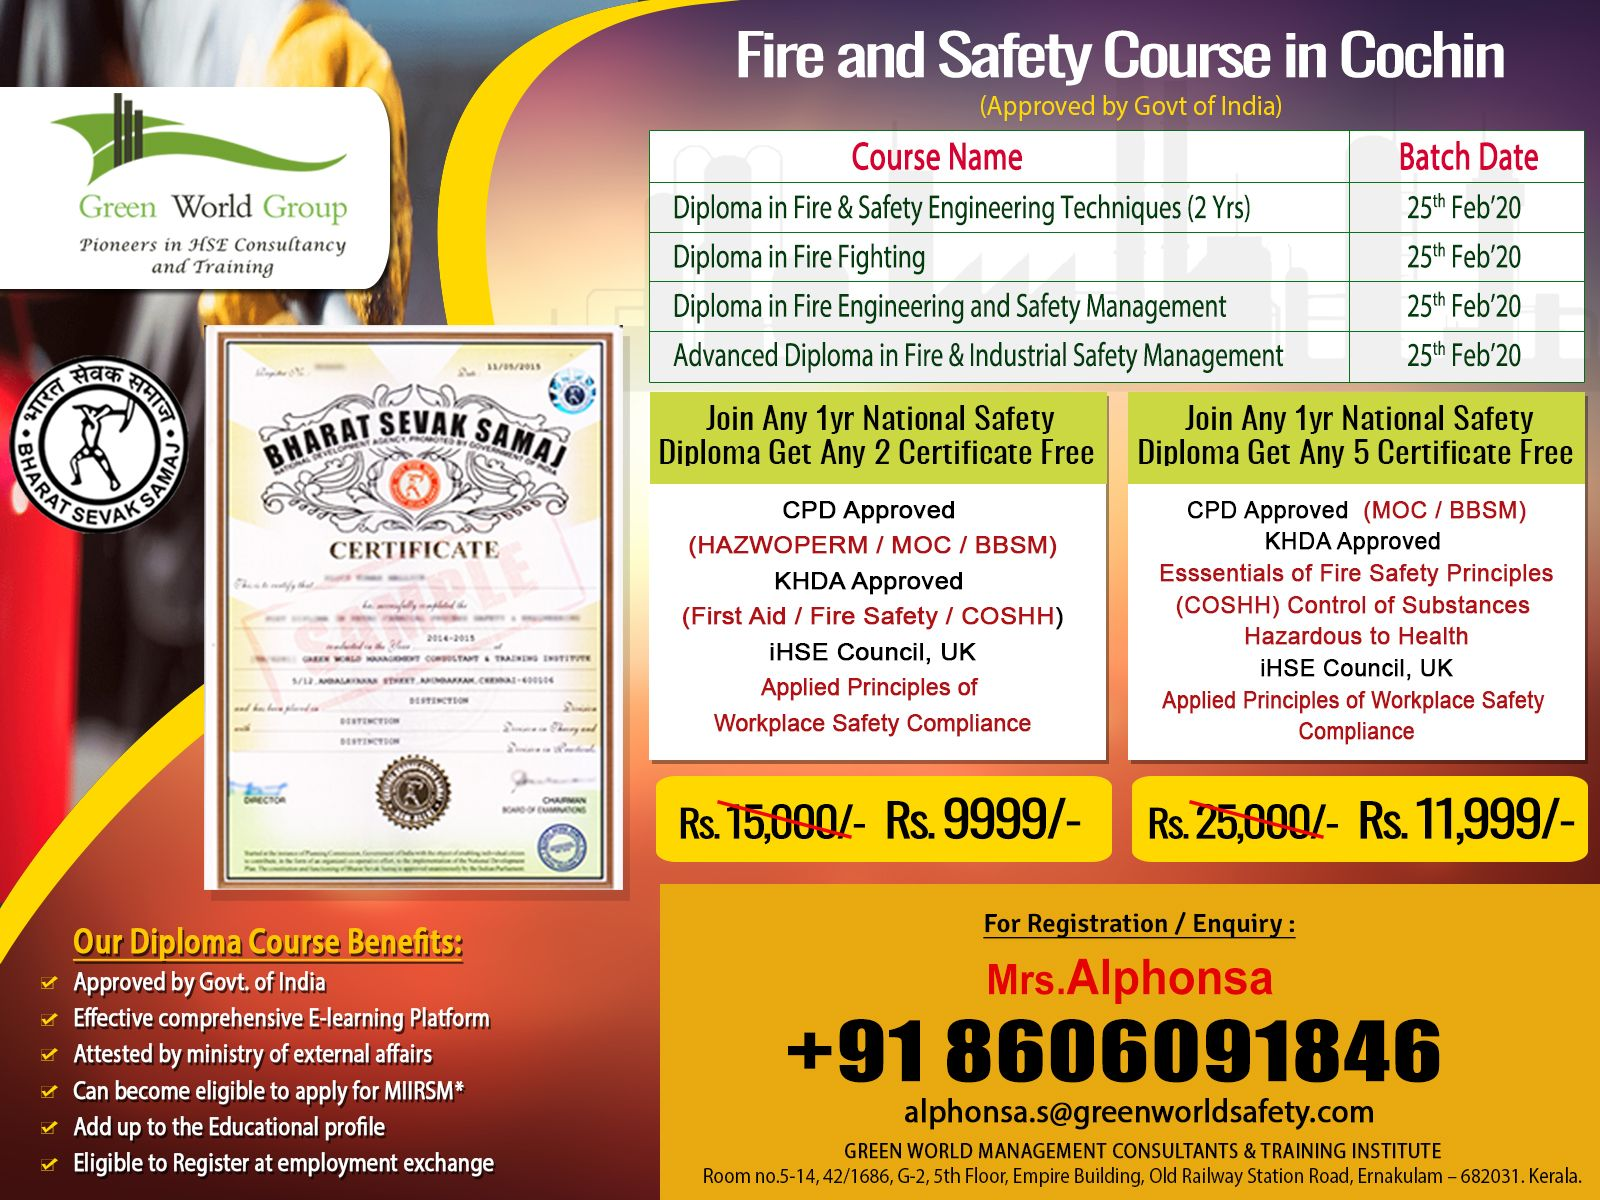 Fire and Safety Course in Cochin is one of the major